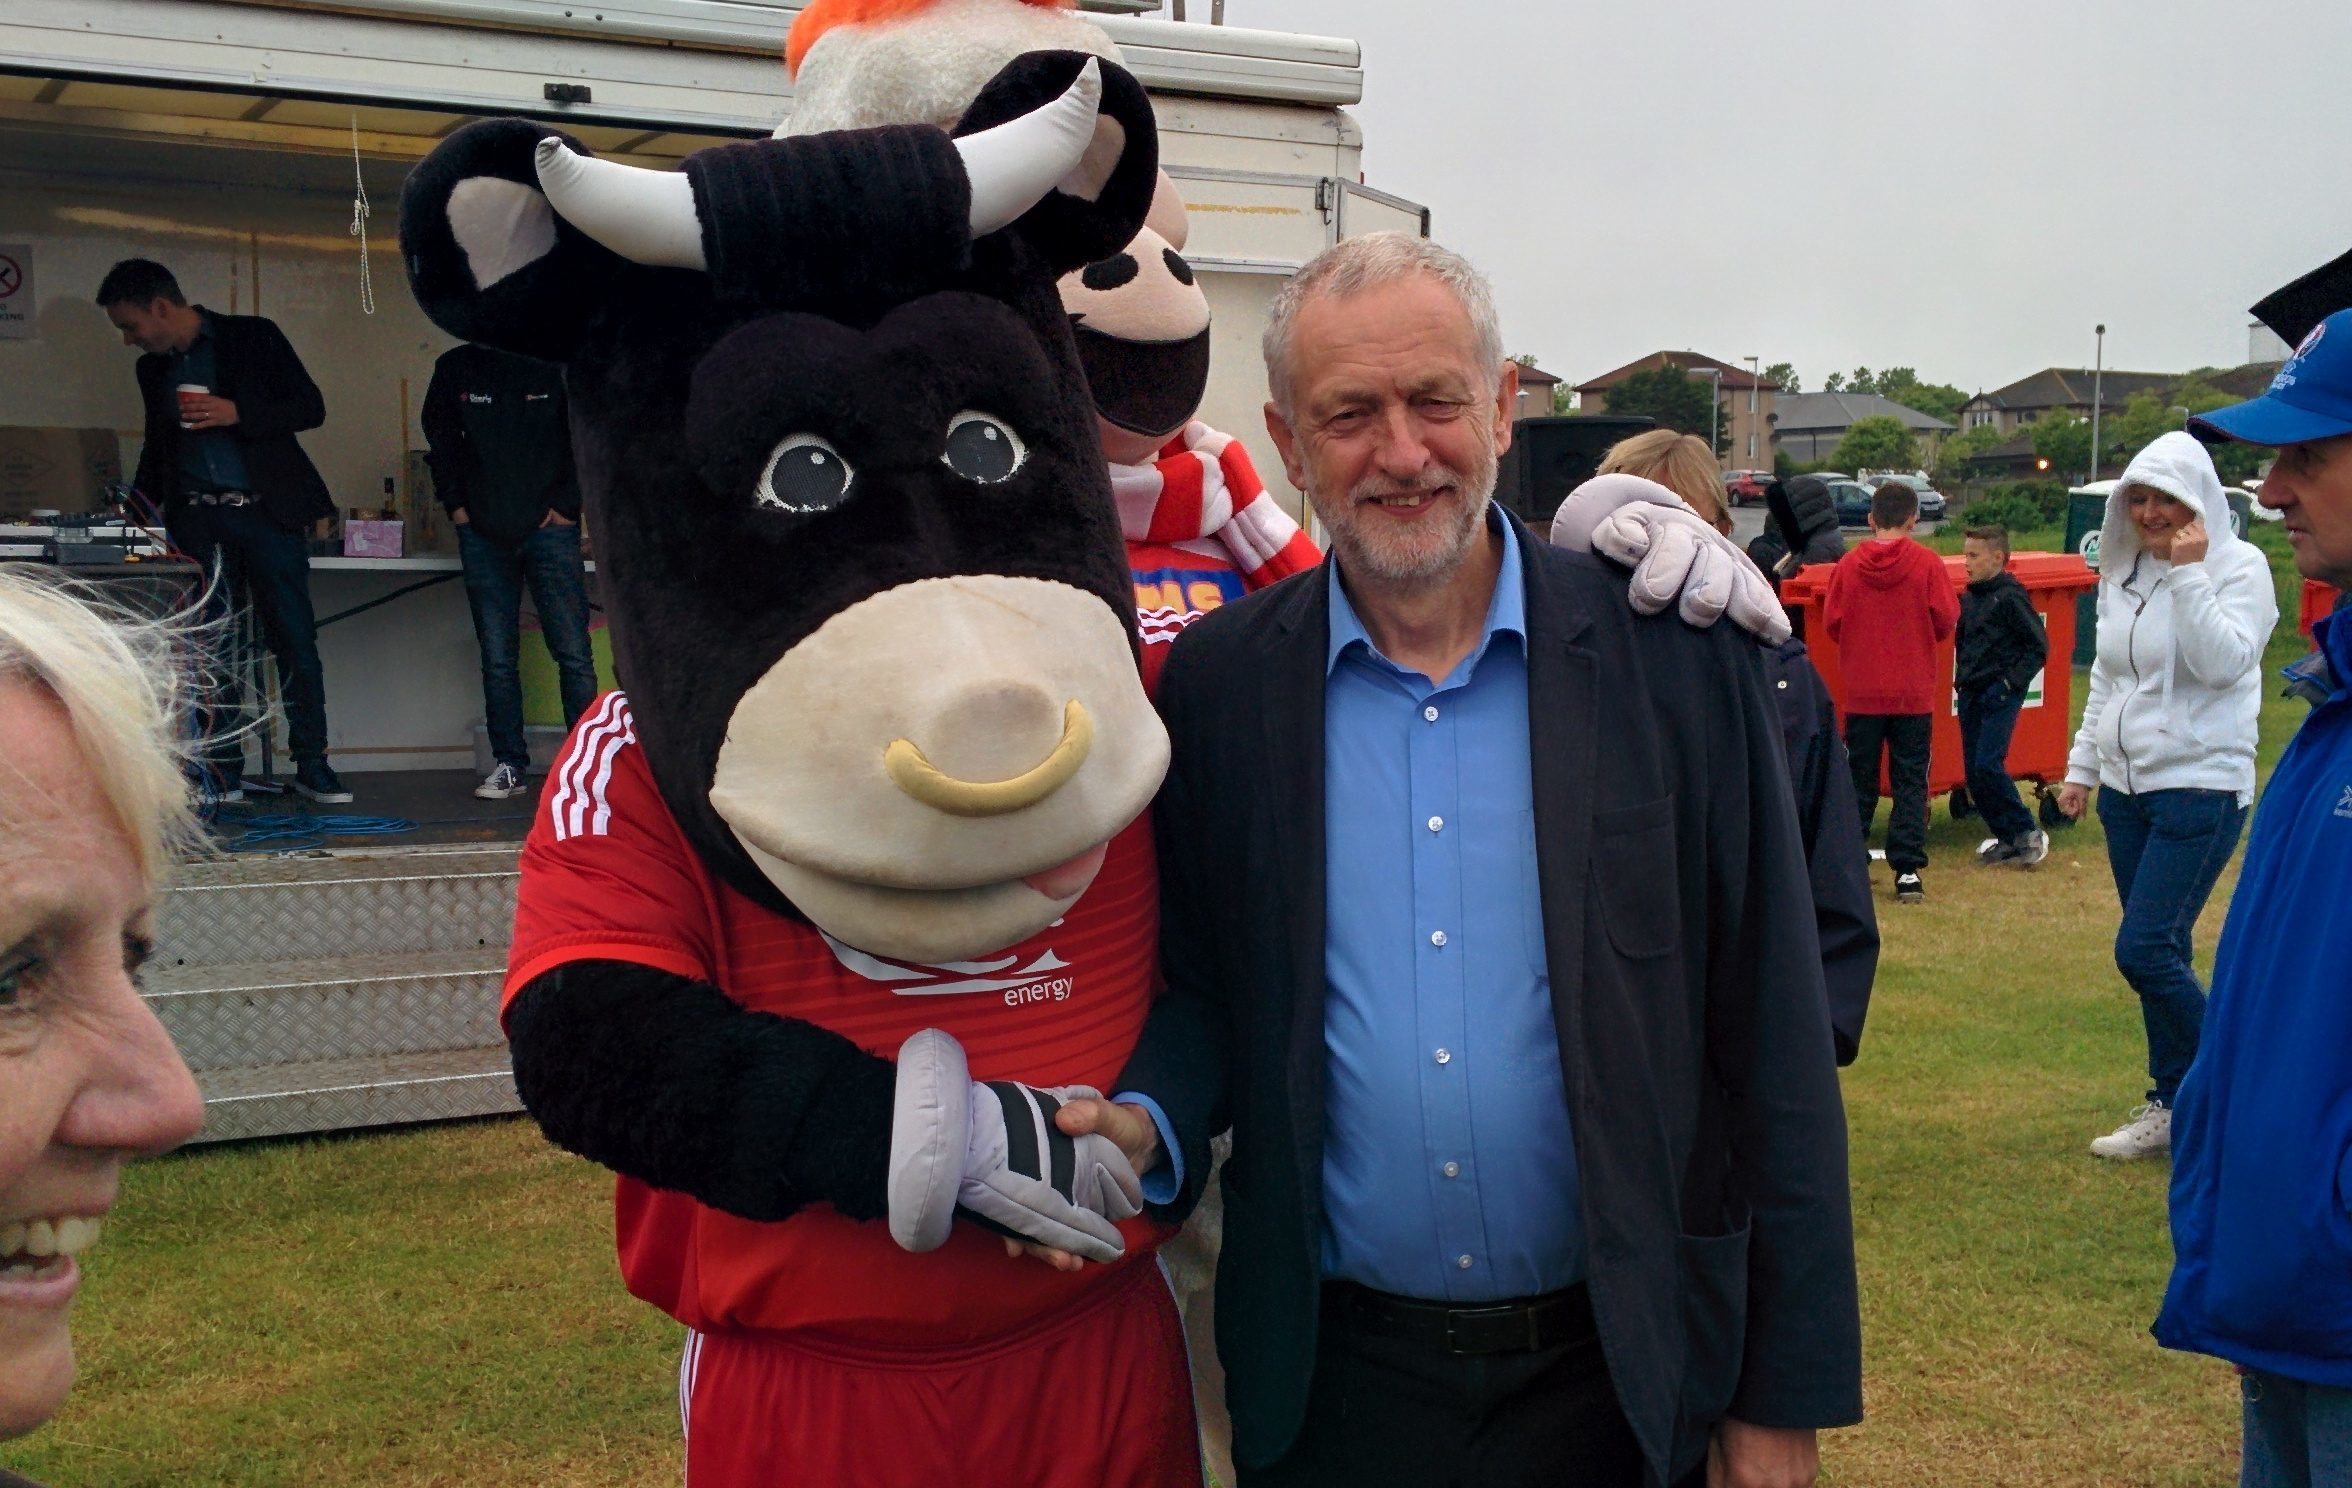 Labour leader Jeremy Corbyn poses with Dons mascot Angus the Bull